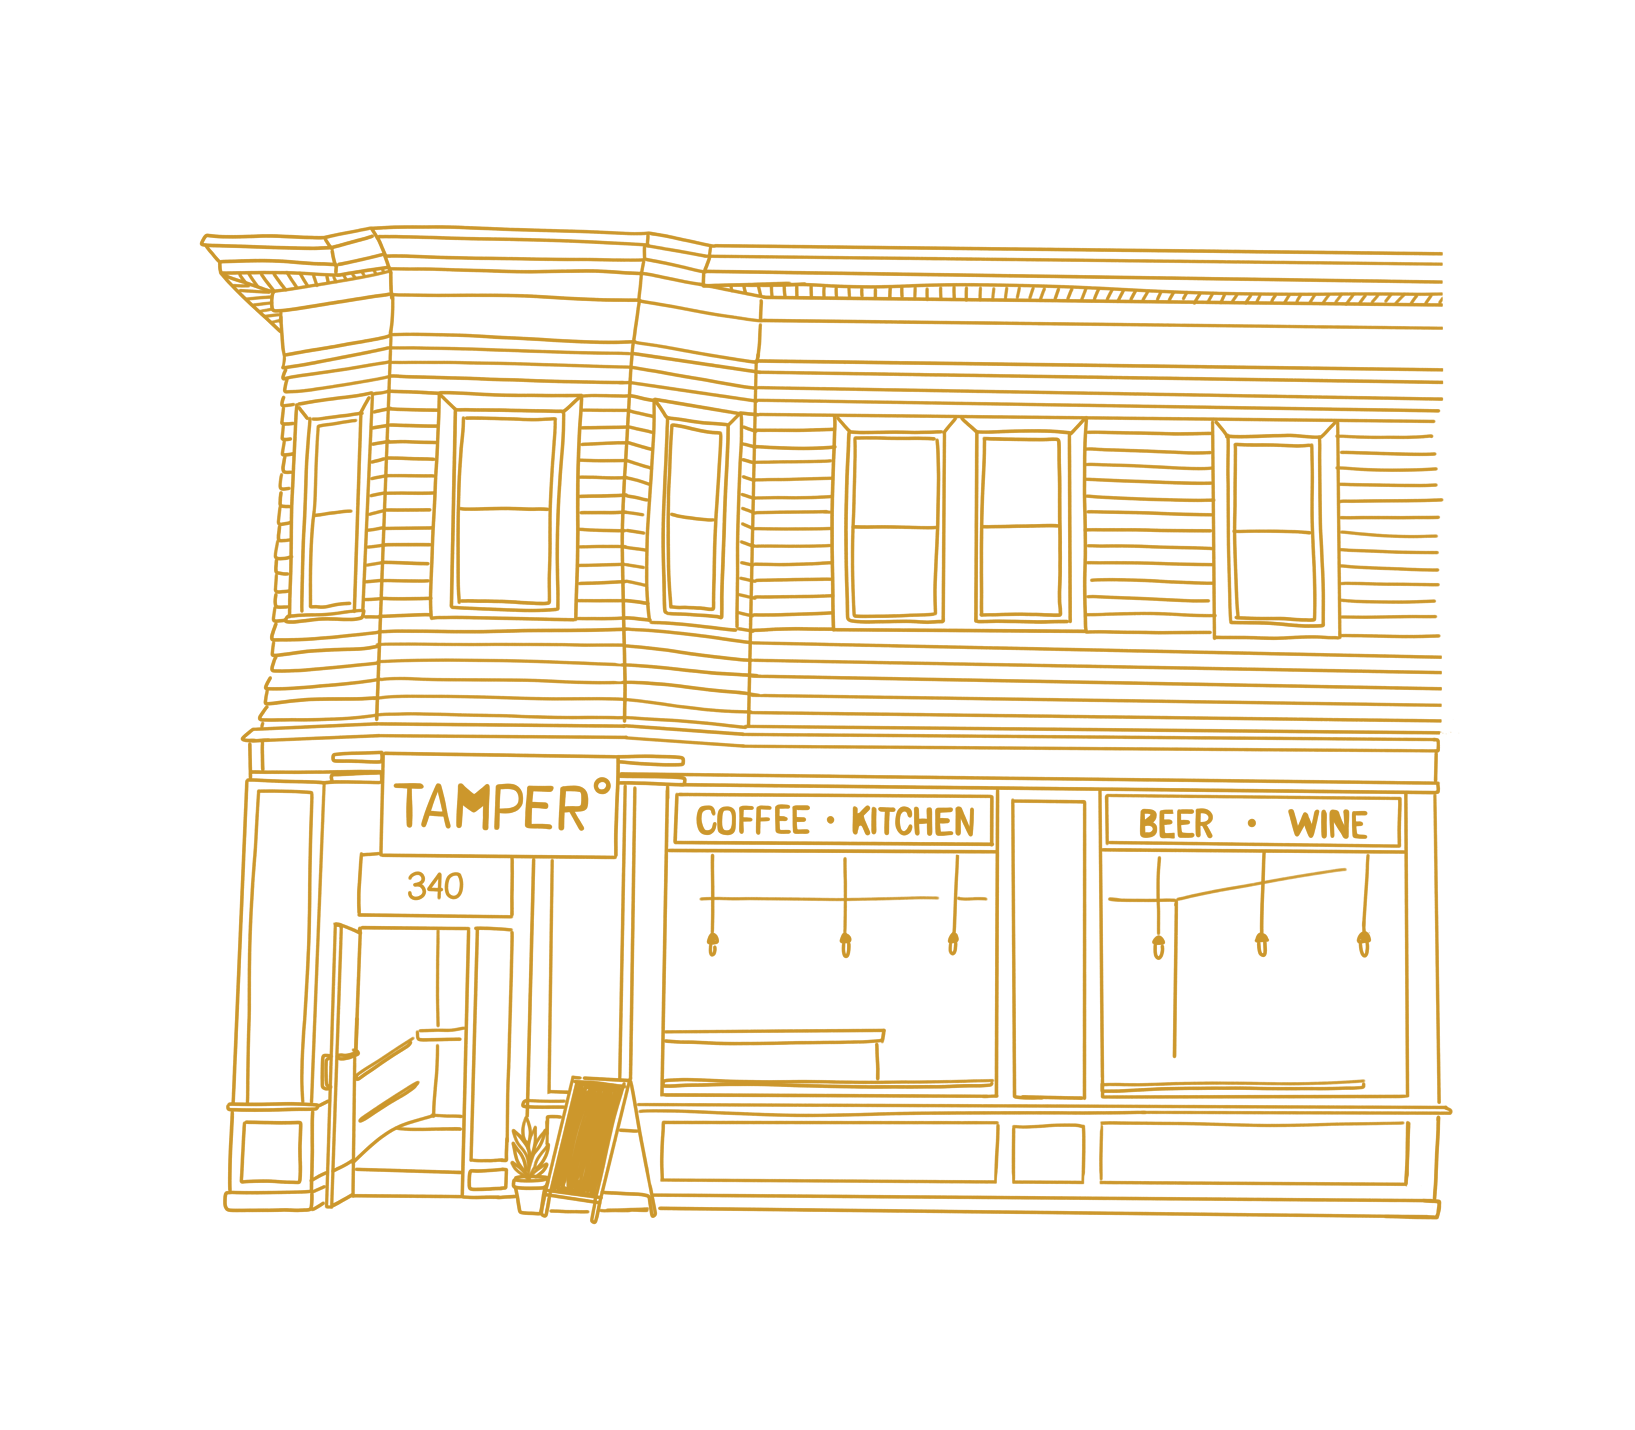 Custom Storefront Illustrations - I create charming custom illustrations to showcase unique storefronts. These are great for social media or to celebrate a milestone!